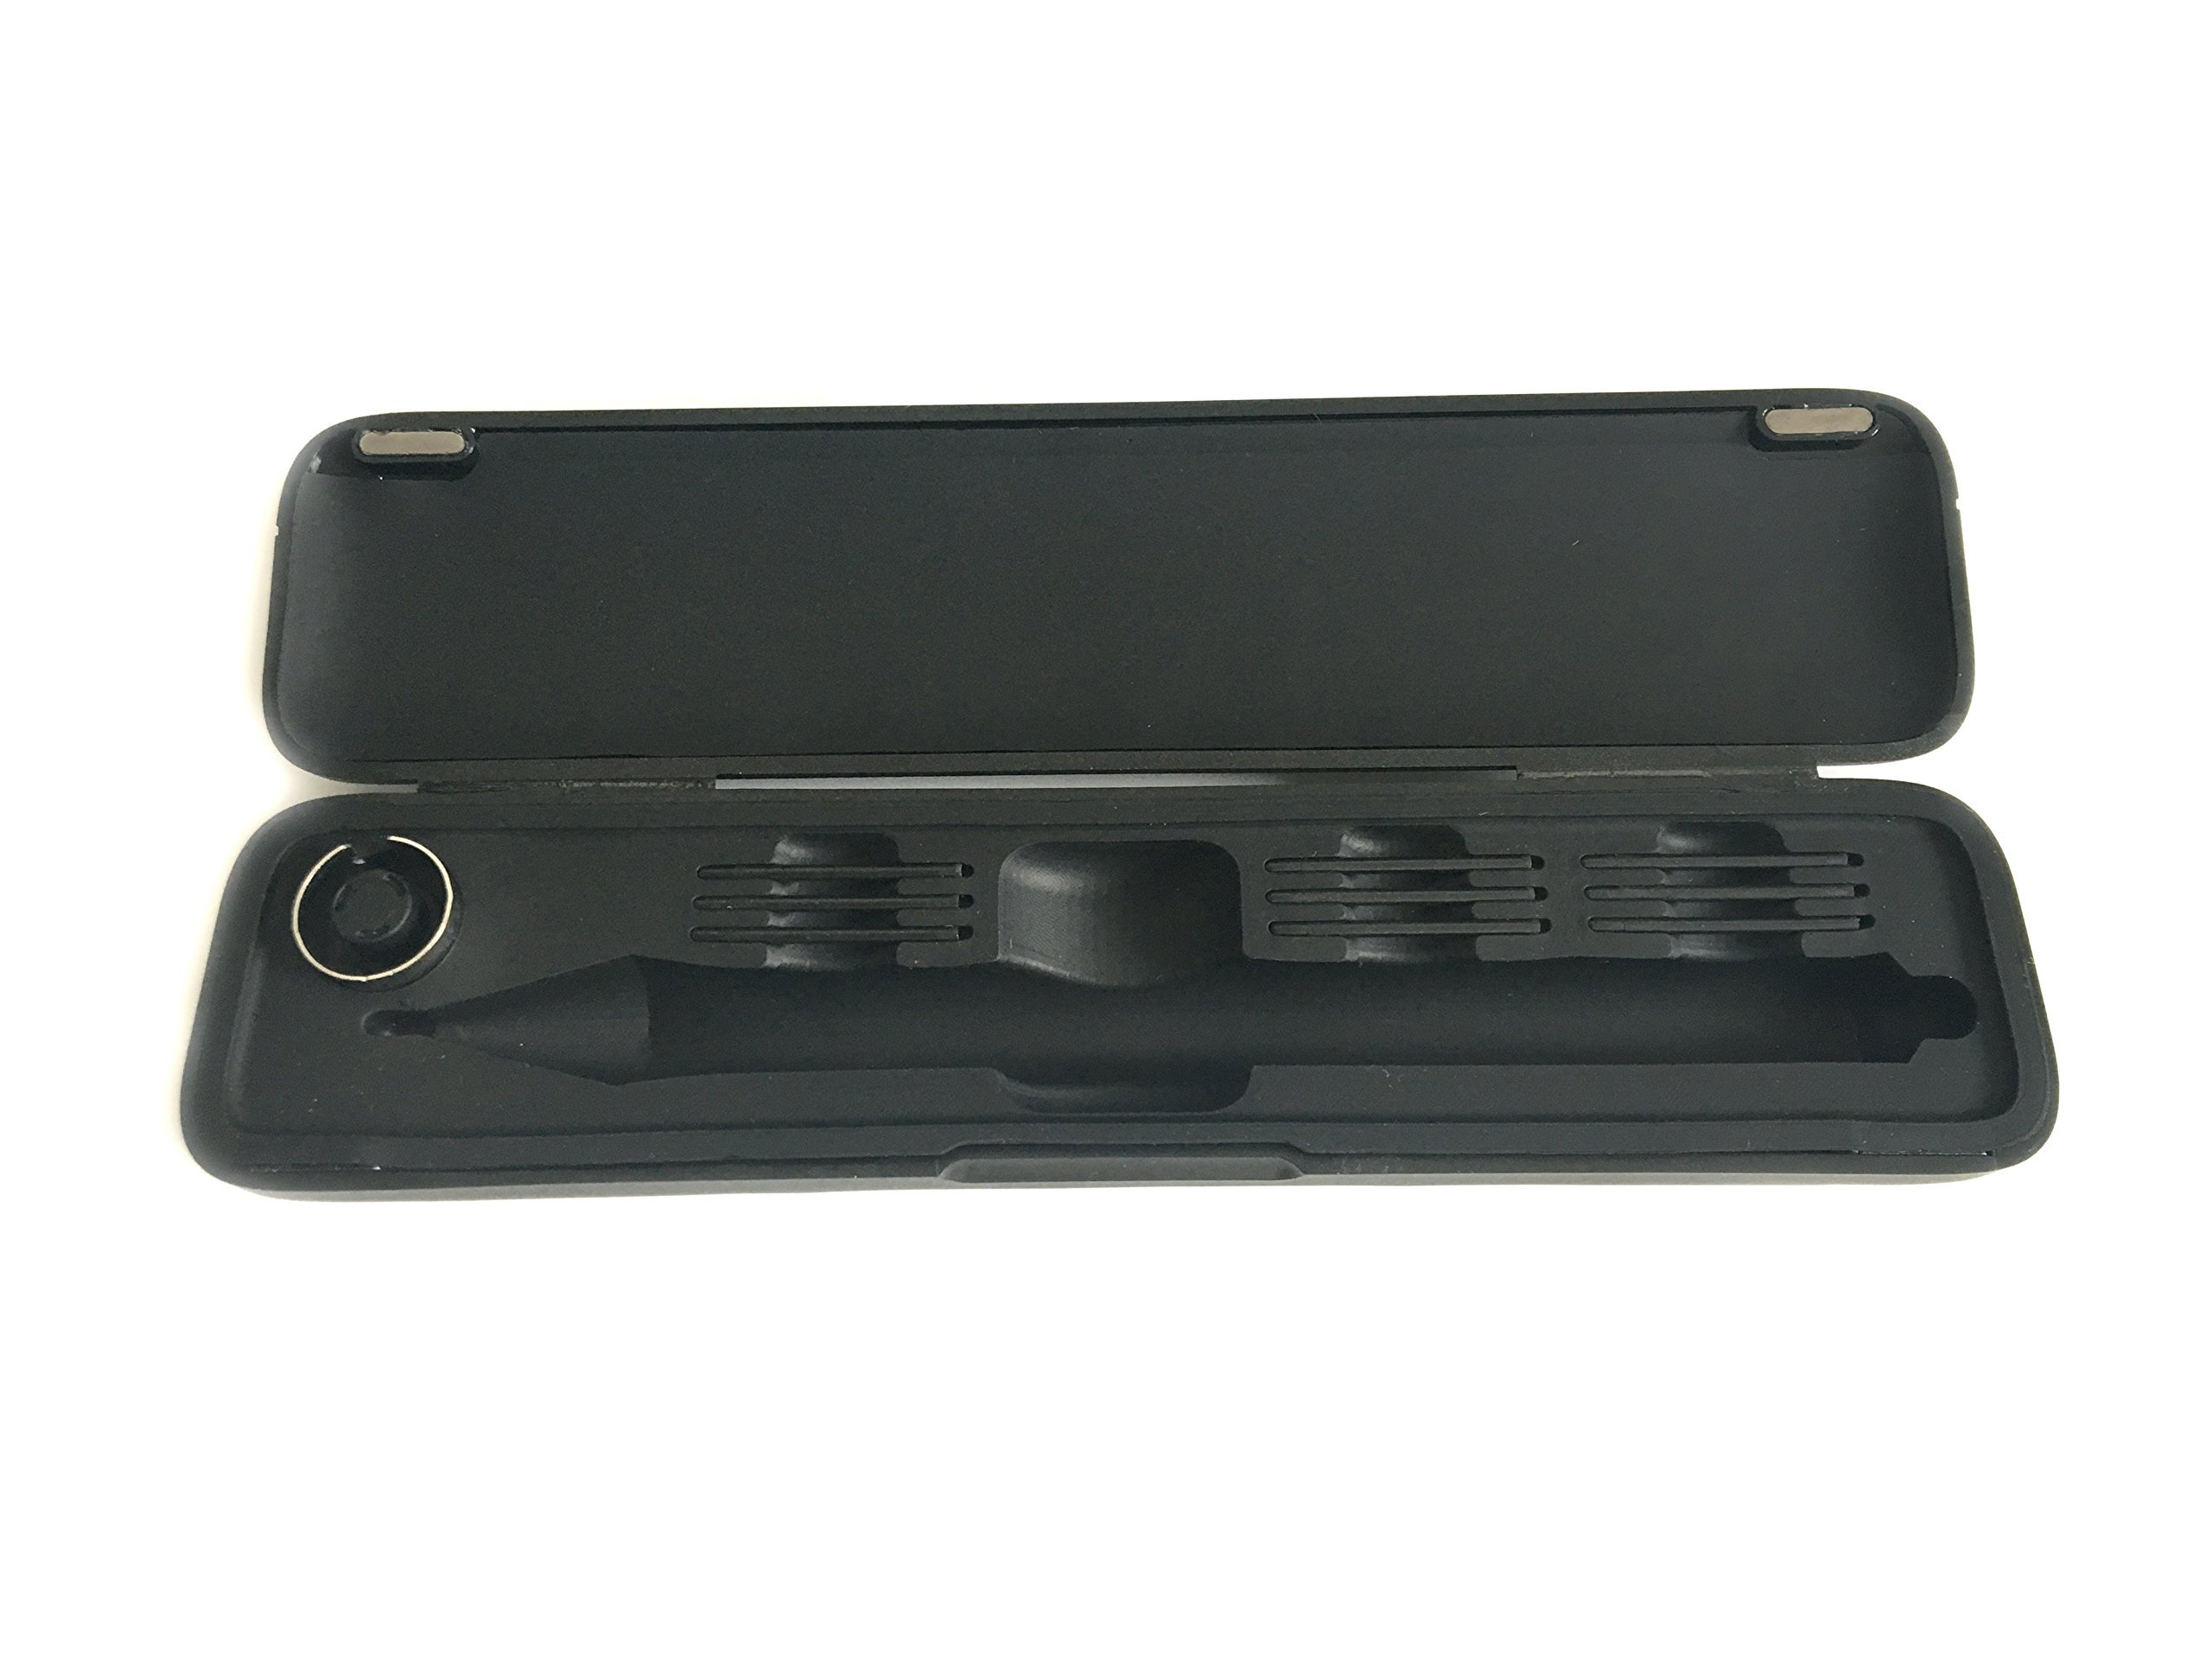 Acupress Pen Case Pen Box with for Wacom CTL-471 671 CTH-480 680 PTH-451 651 650 by Acupress